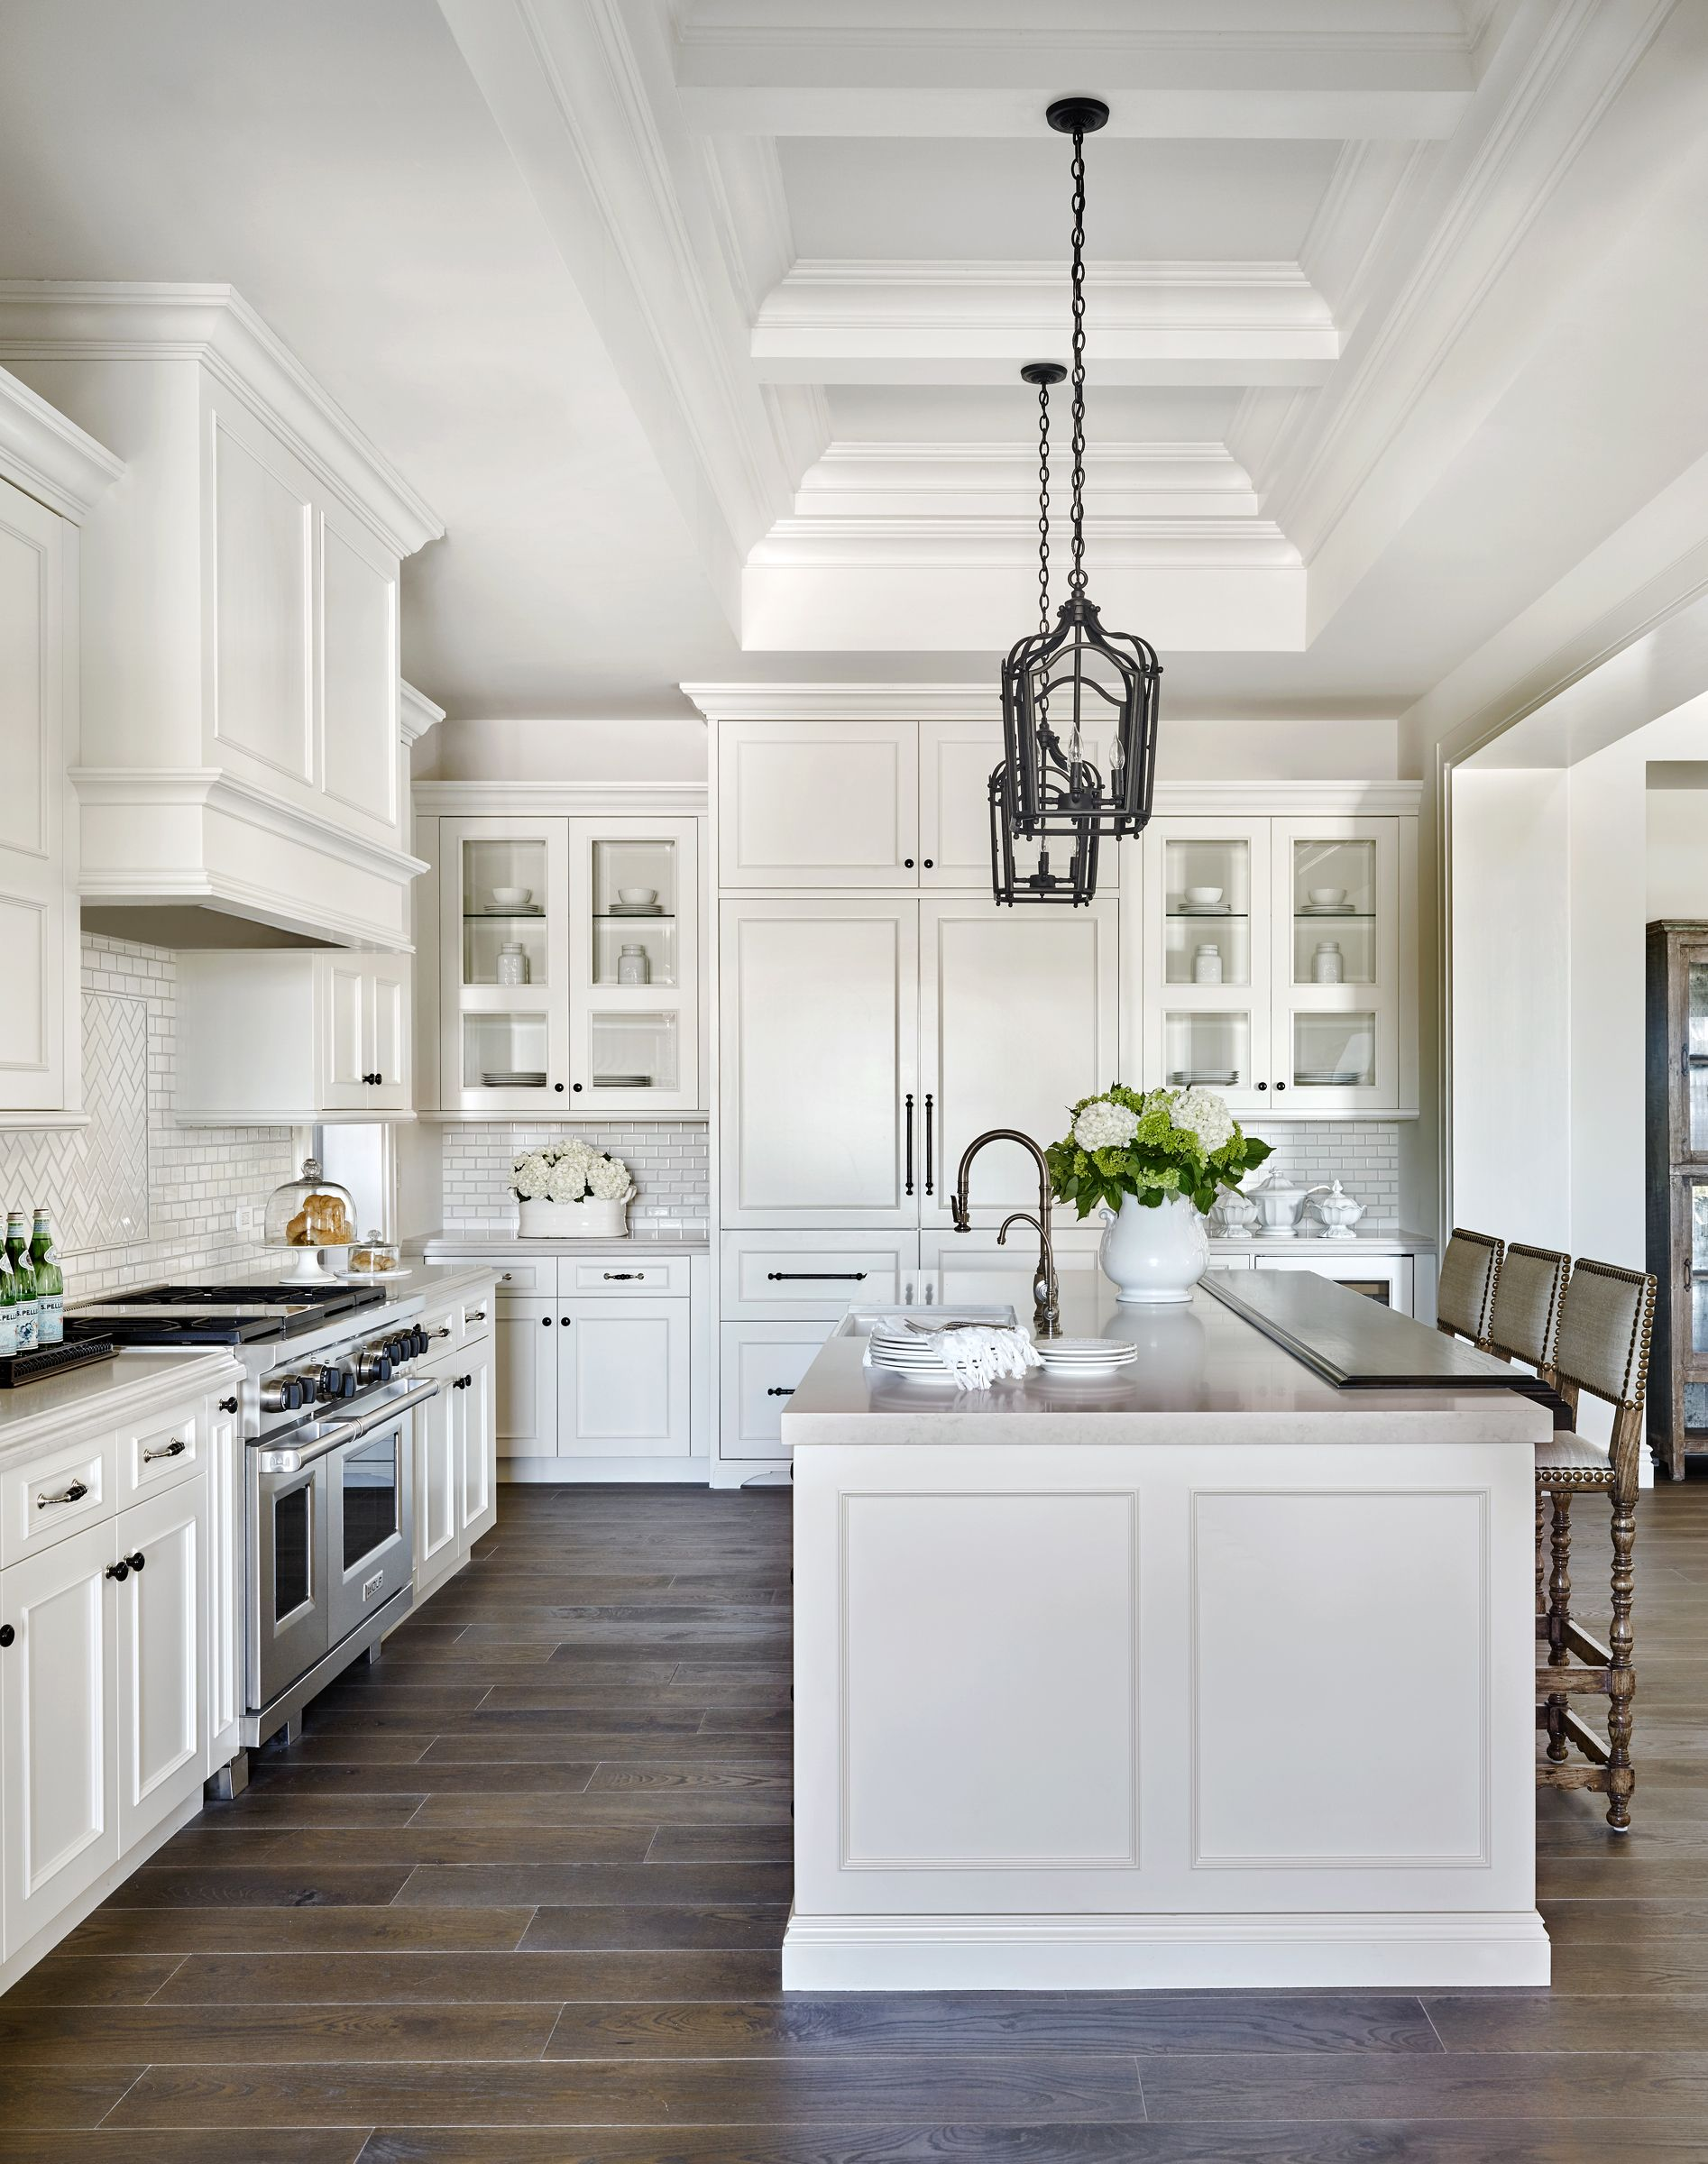 white cabinet choosing country cabinets with eva furniture image spacious ideas kitchen